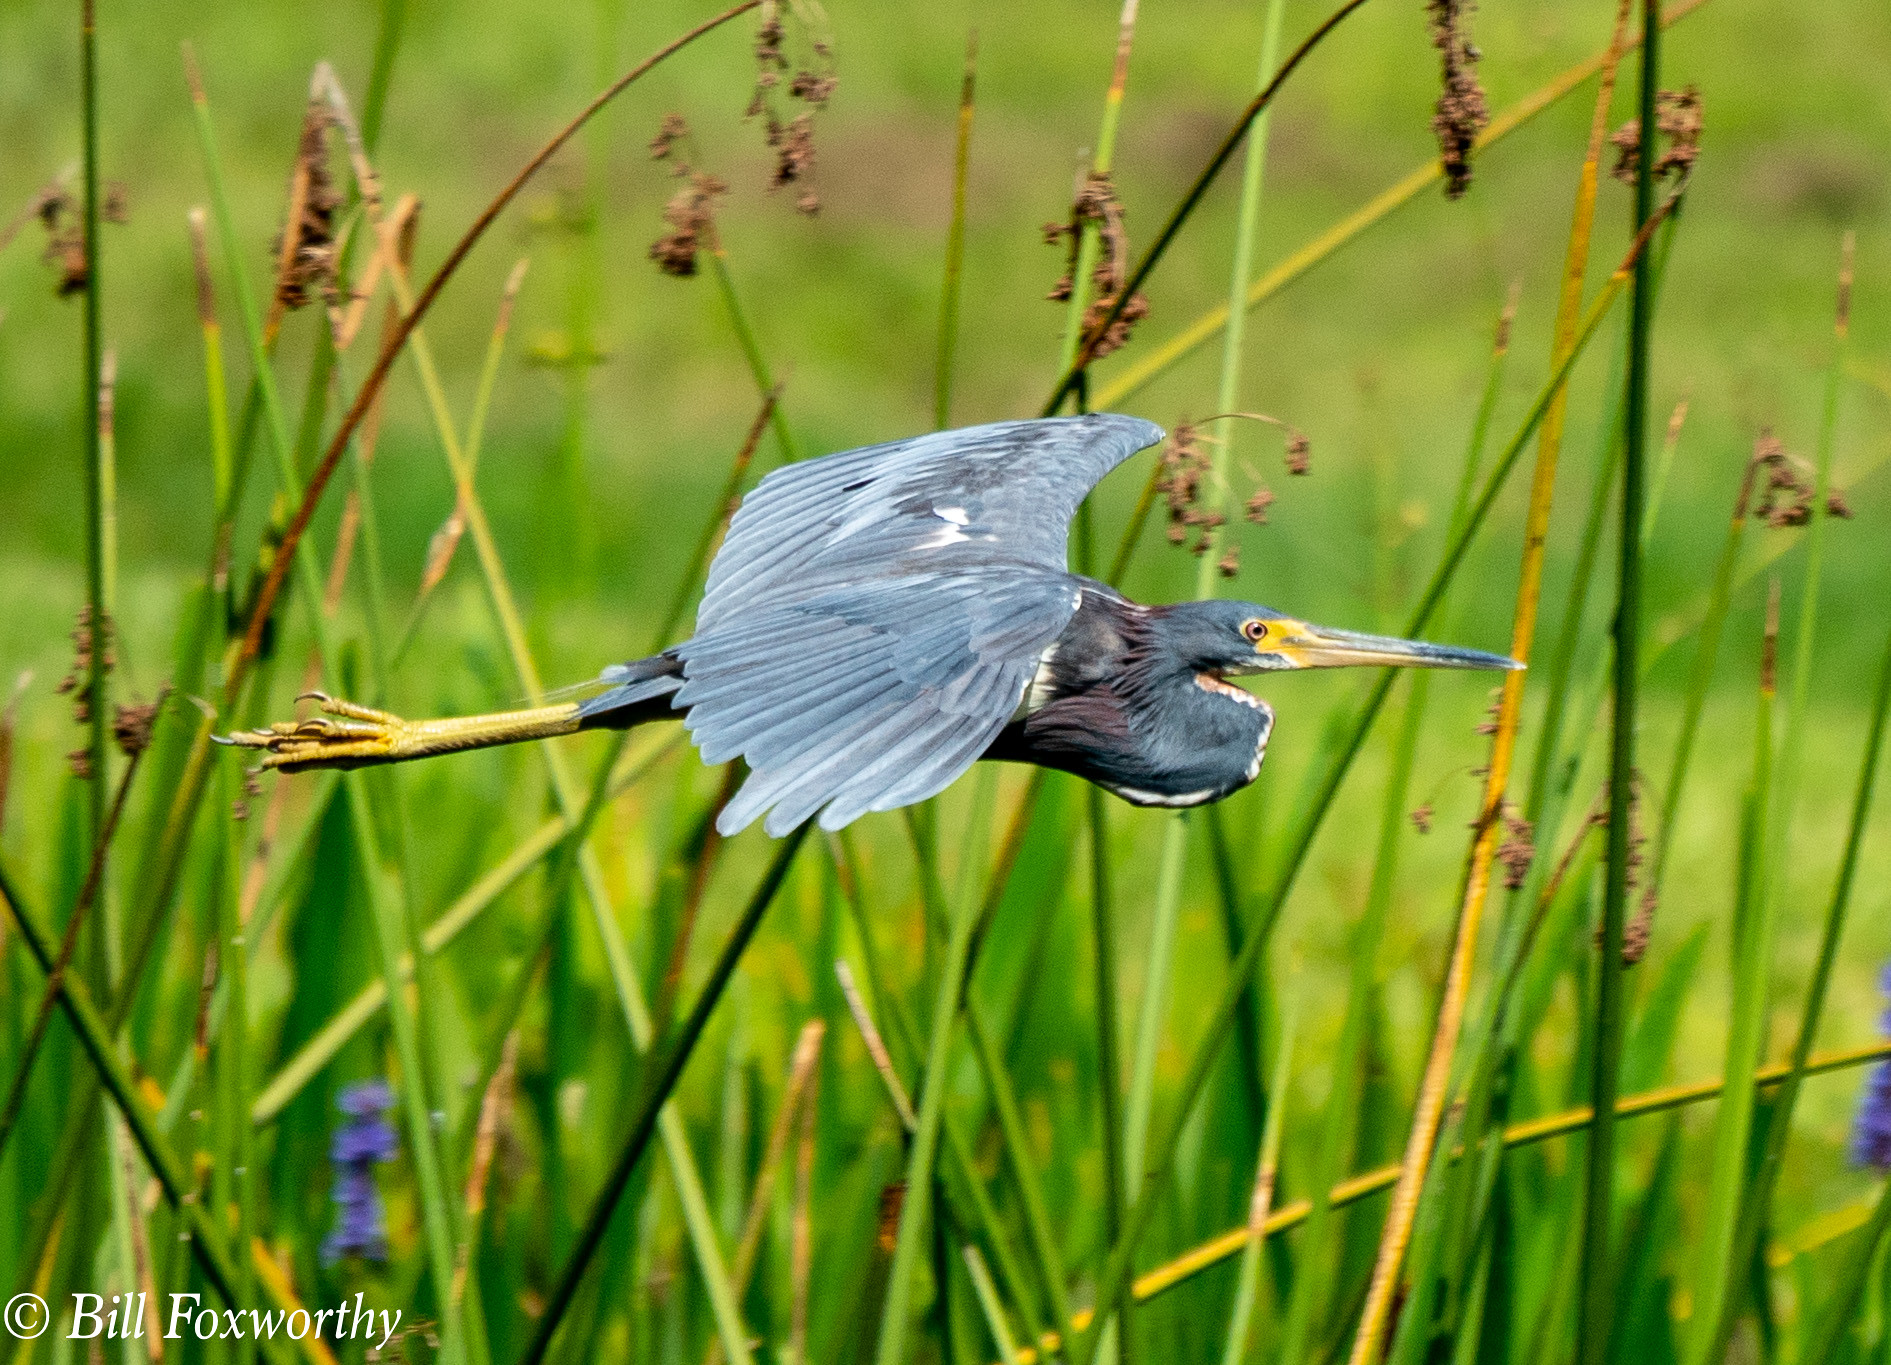 SONY-ILCE-A9, Tri Colored Heron, 00933 ,July 19, 2019